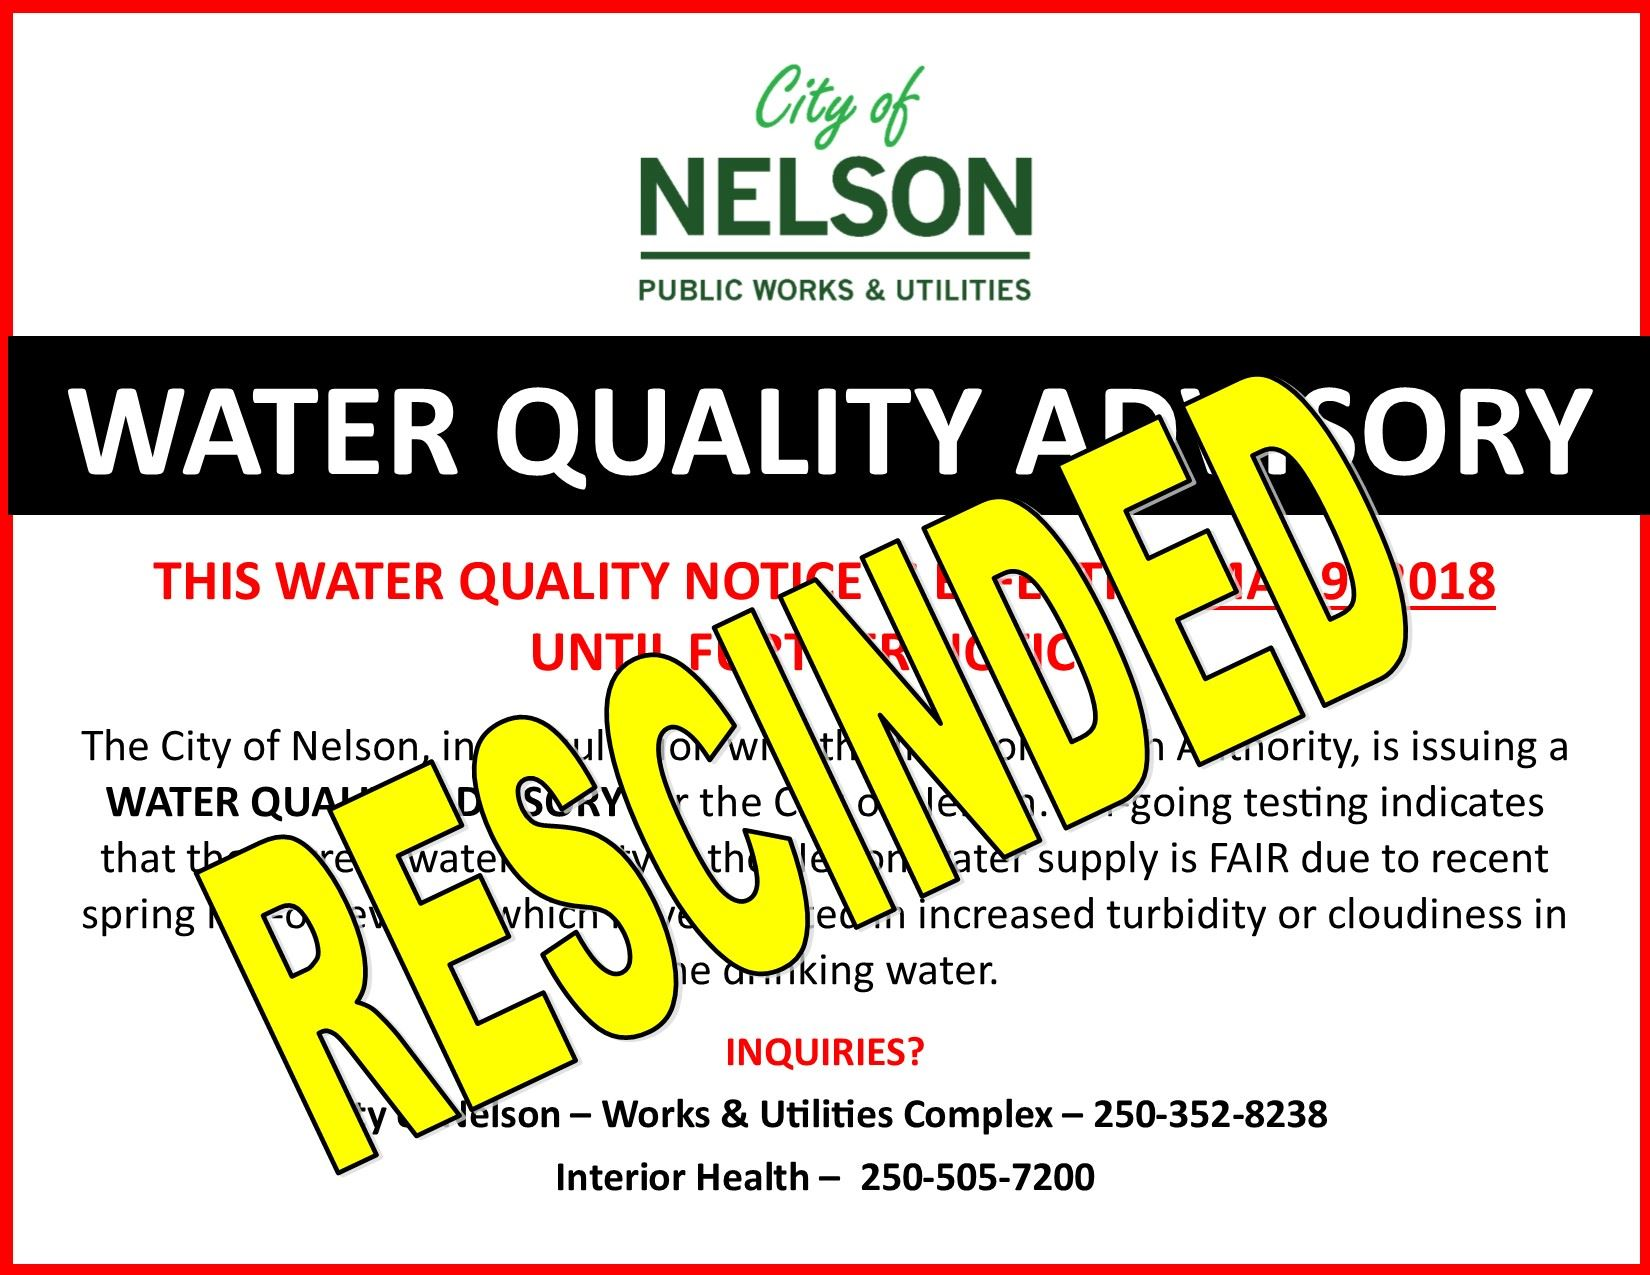 Water Quality Advisory May 8 2018 RESCINDED